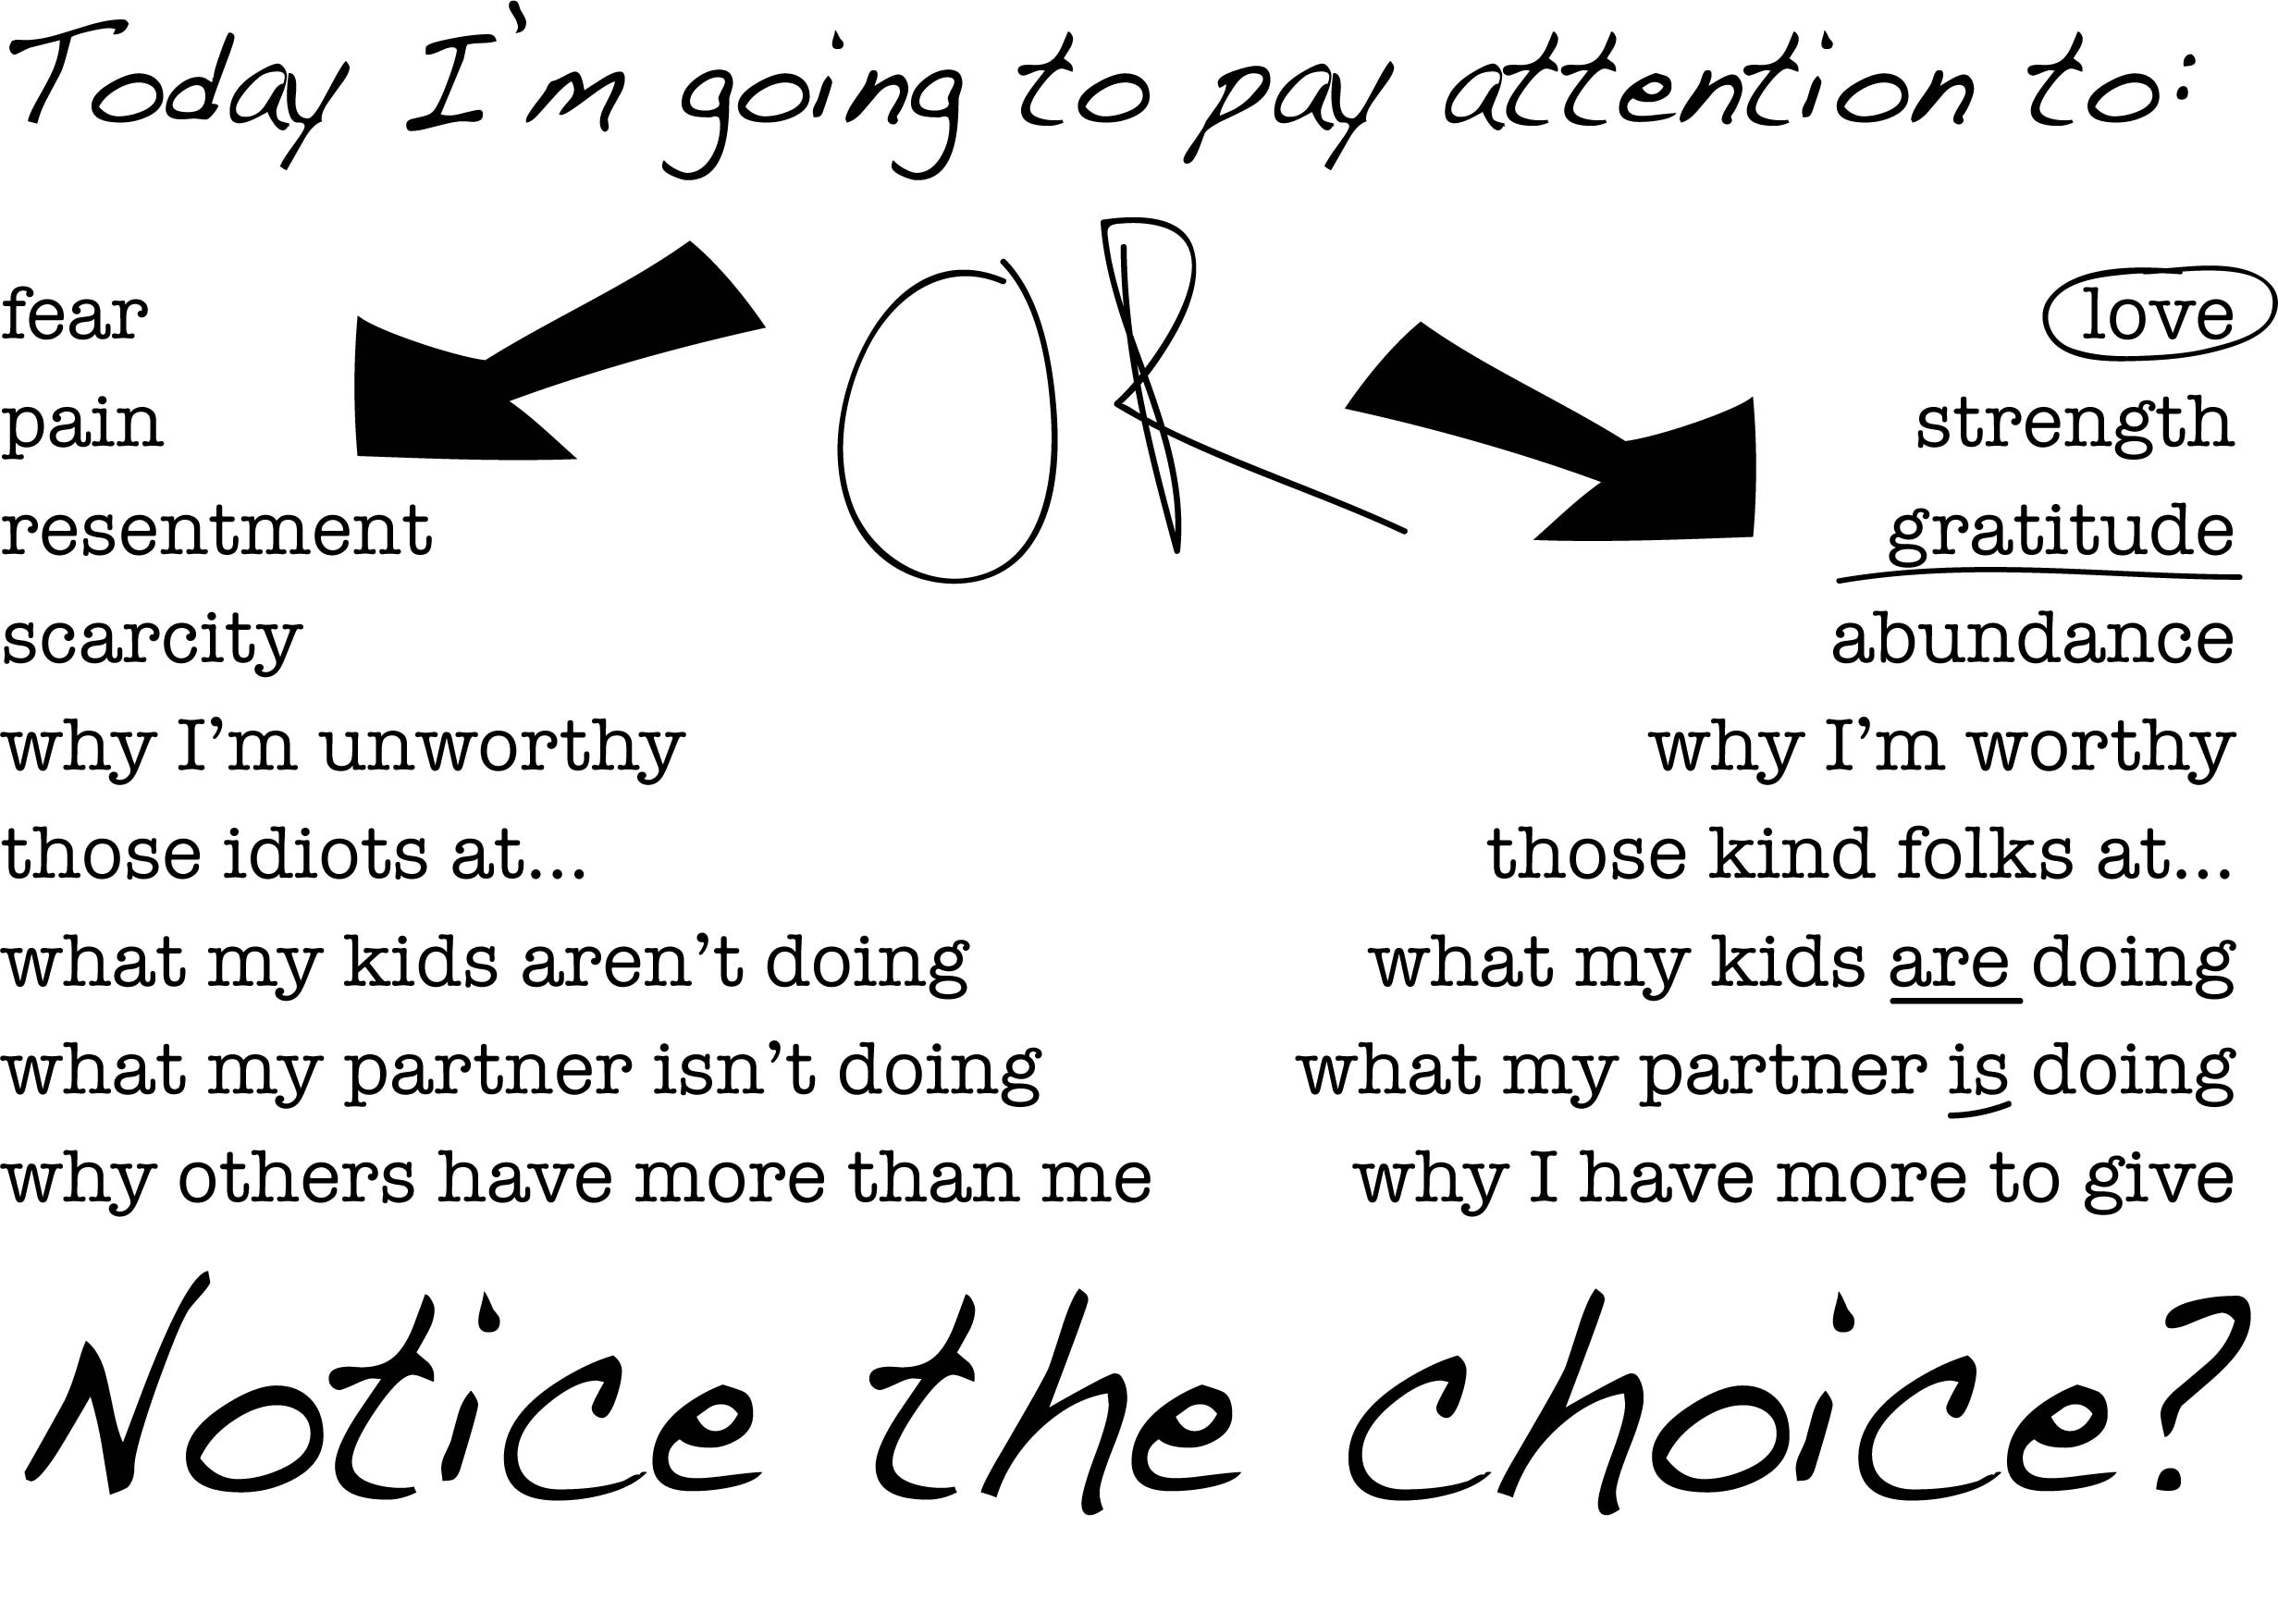 choices and attention lisa lillibridge